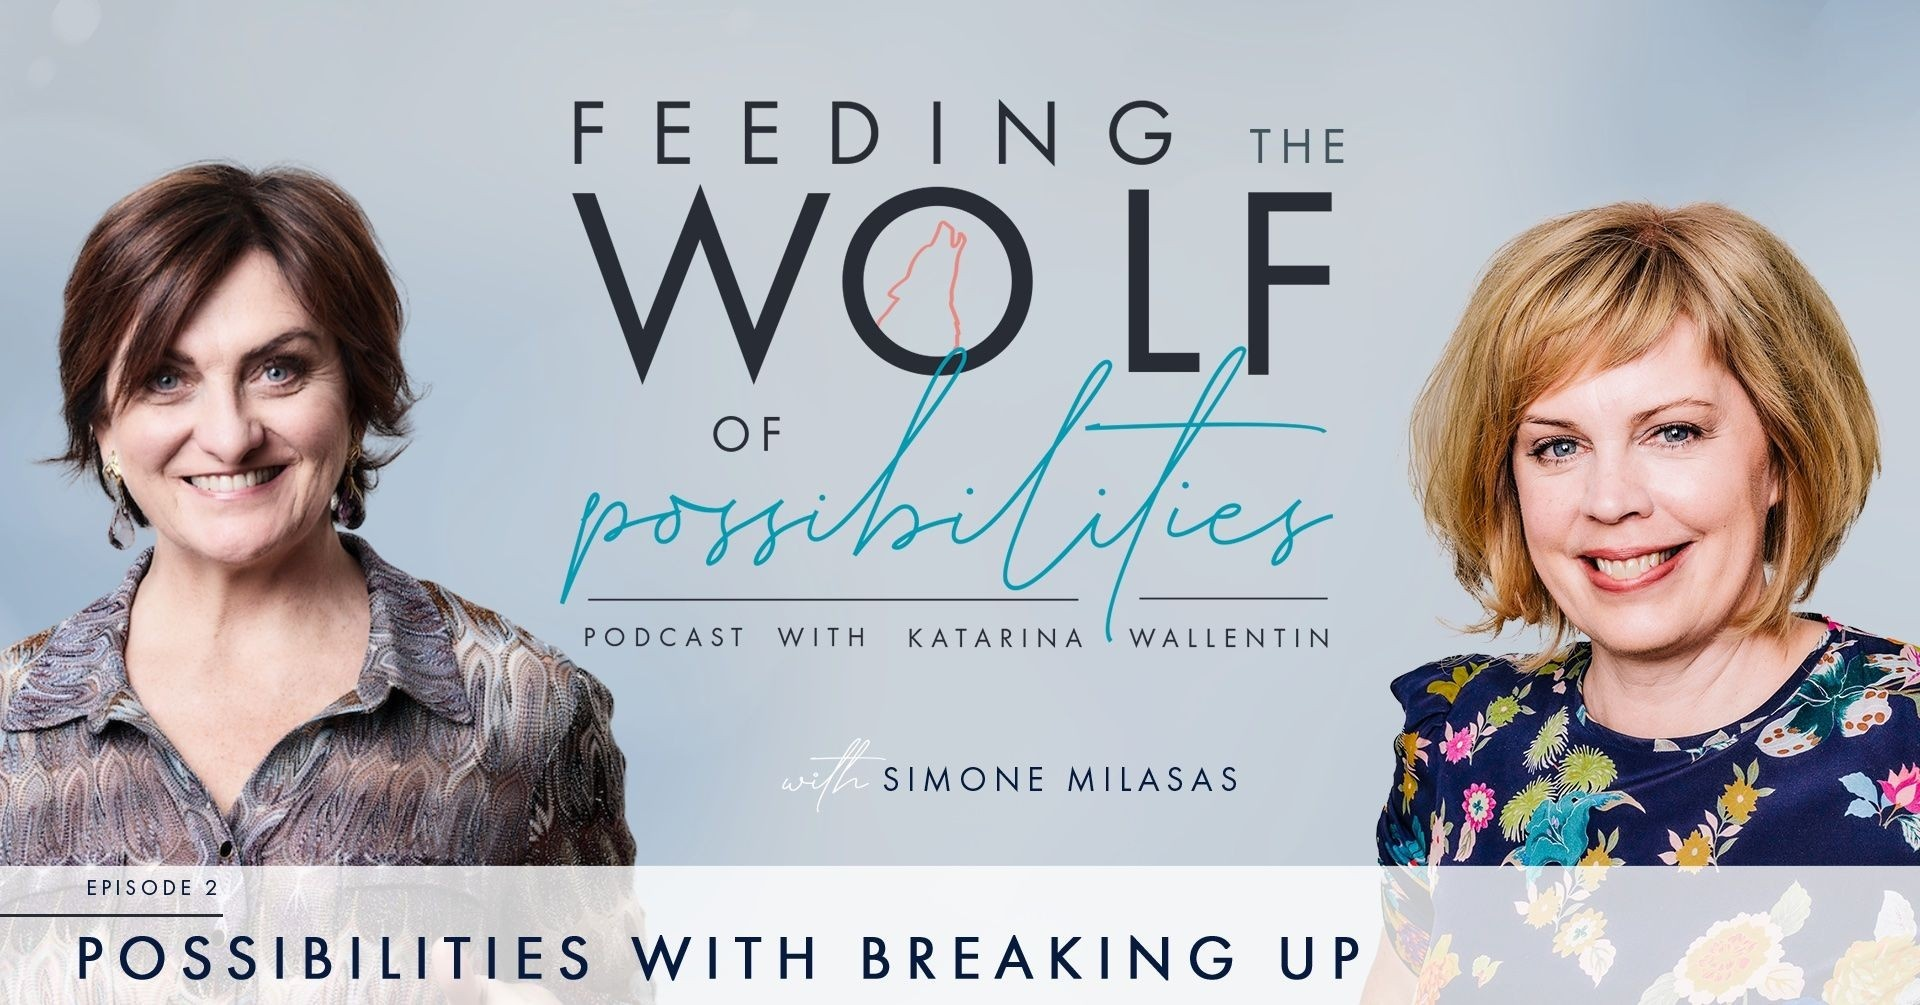 Possibilities with Breaking Up podcast